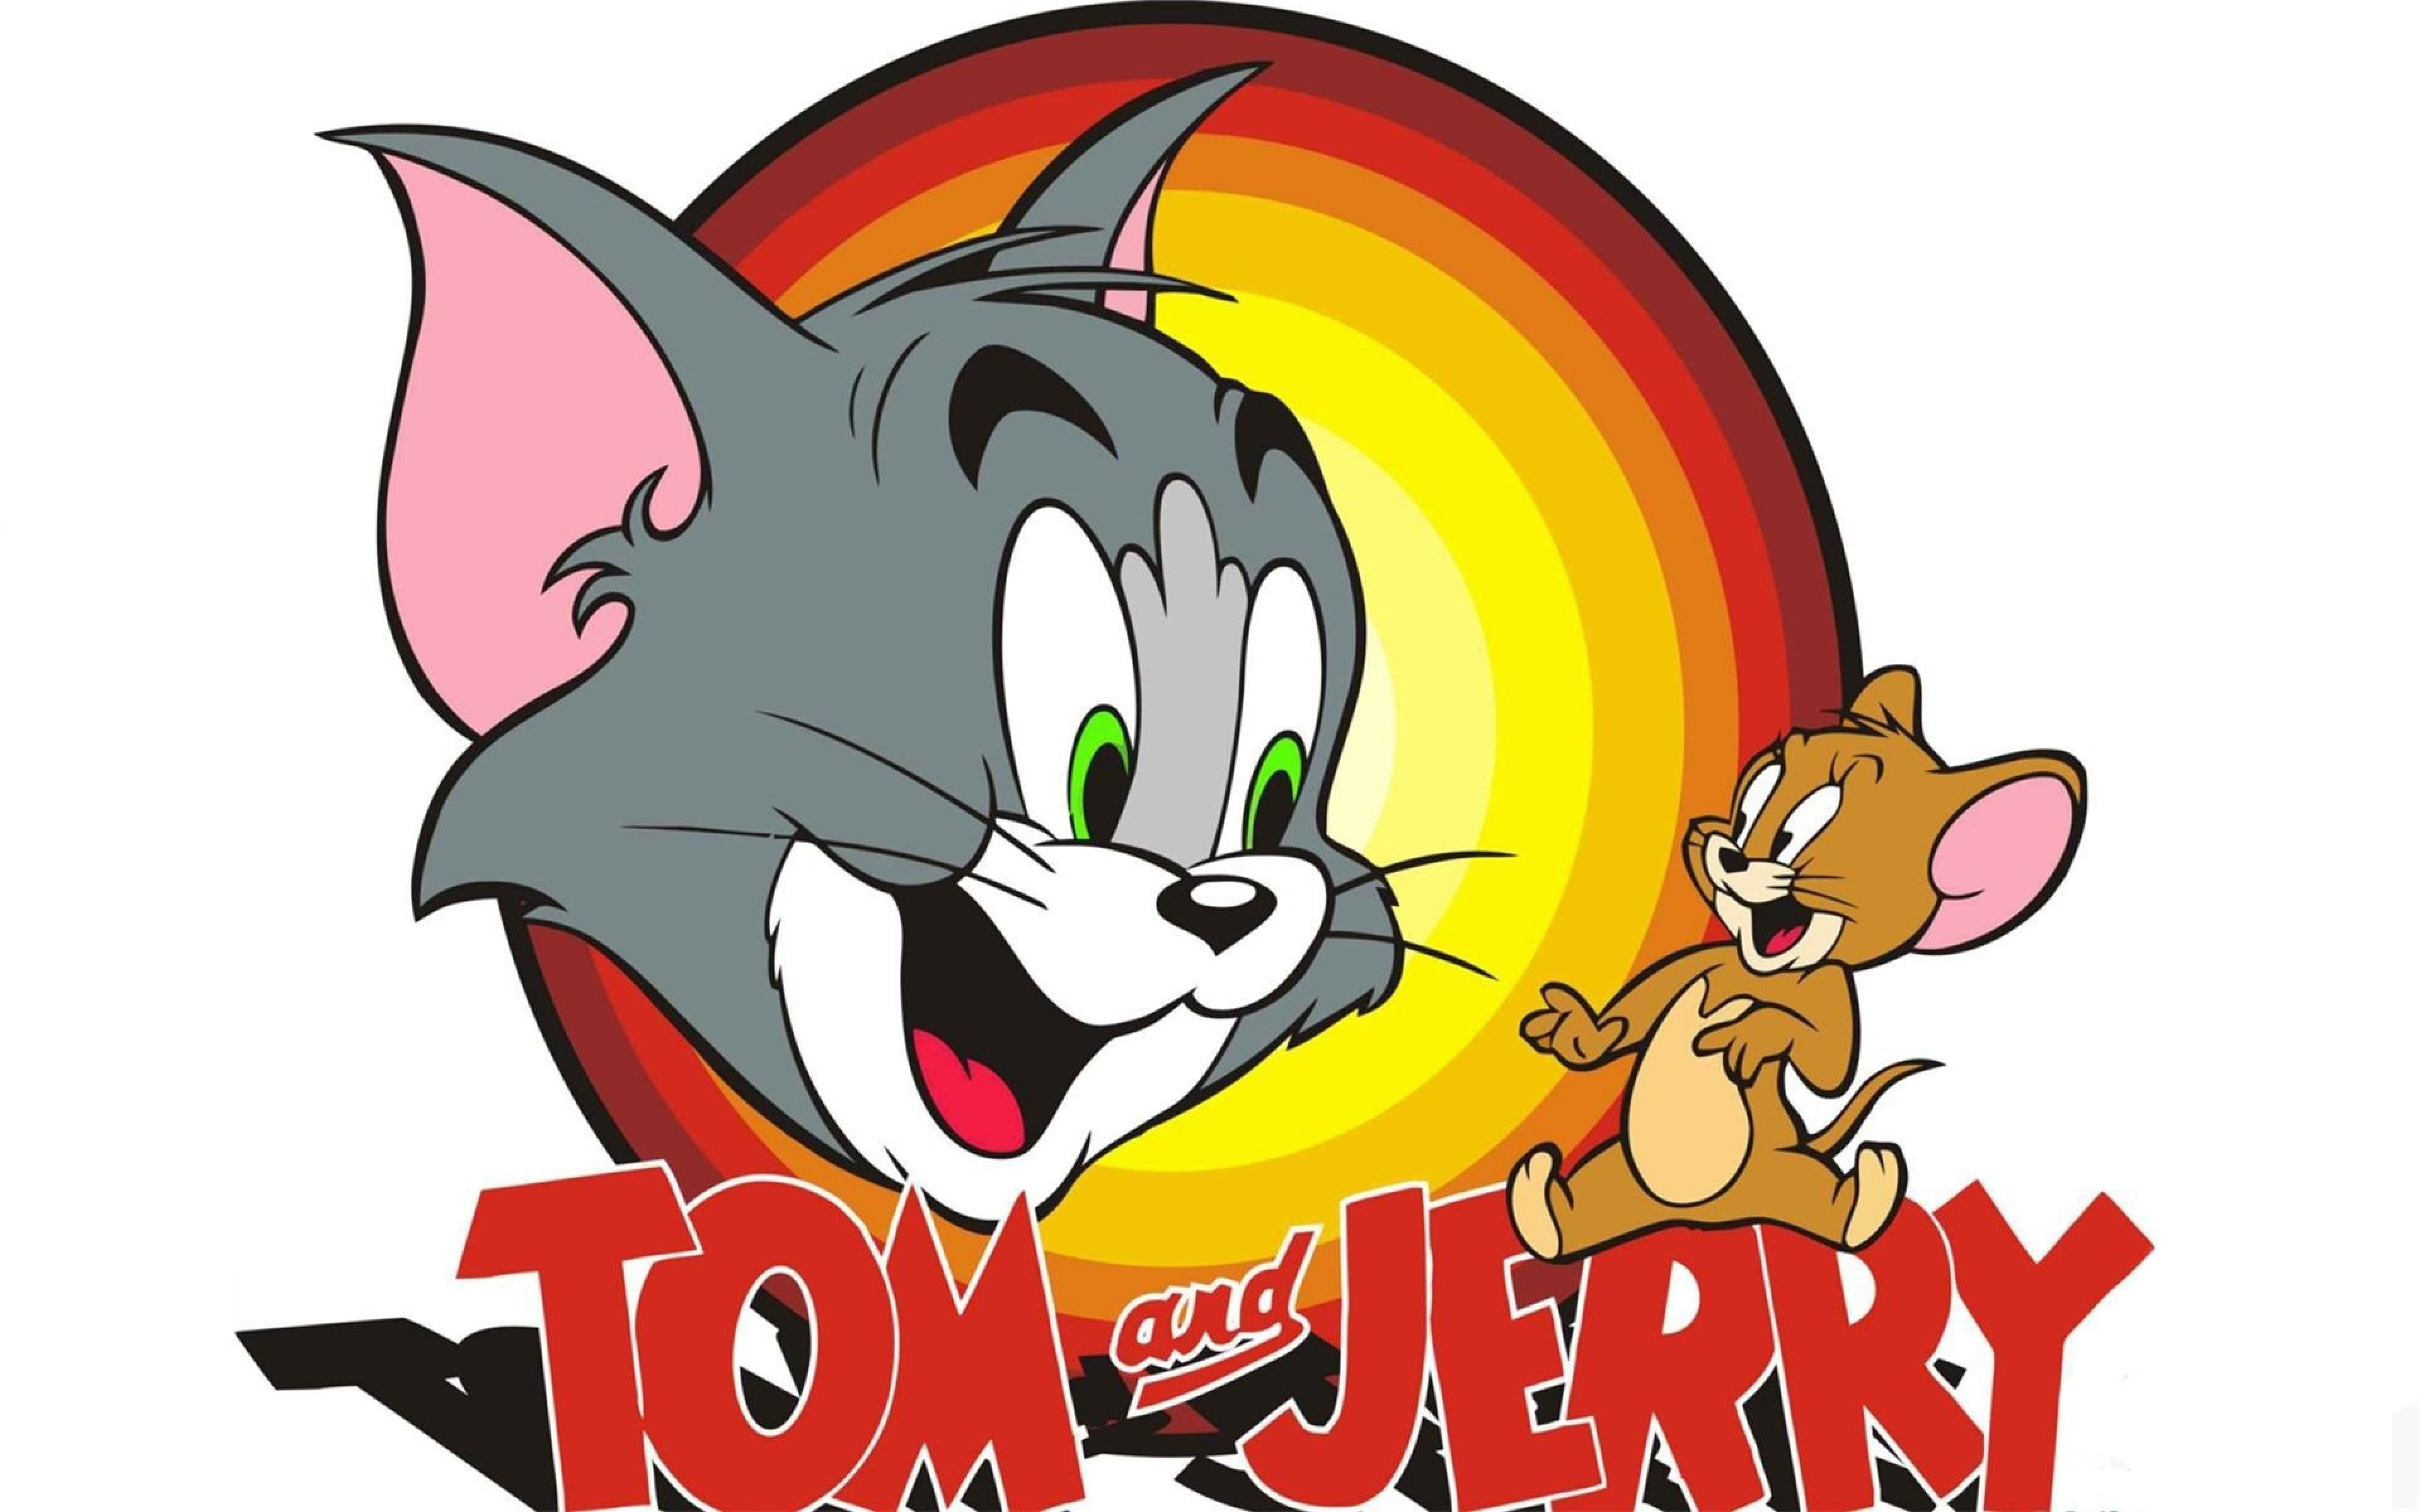 tom_and_jerry_mouse_cat_tom_jerry_99518_3840x2400 Image source